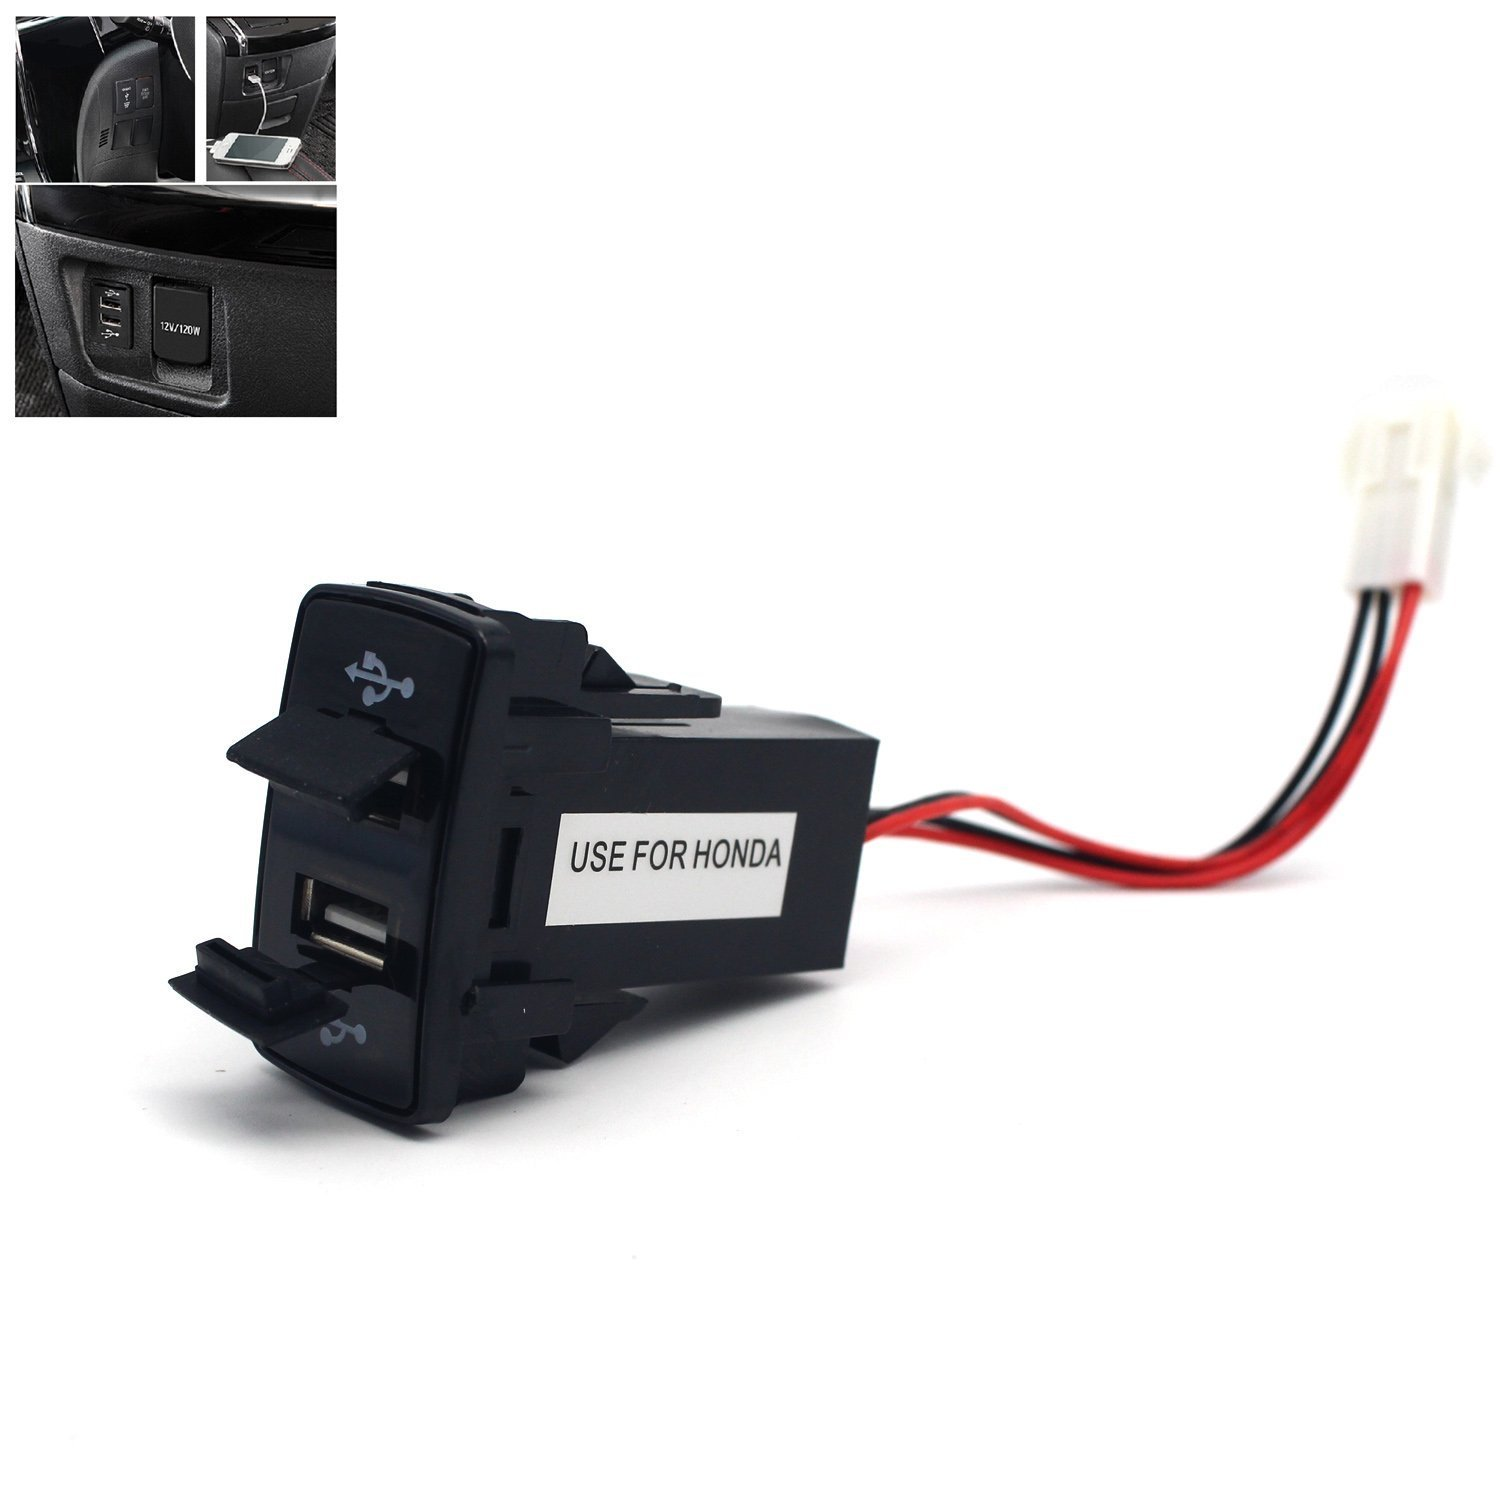 Motong 21a Dual Usb Socket For Honda 2007 Fit Fuse Box Power Port Iphone X 8 7 6 5 Ipad Samsunglghuawei And More44 26mm